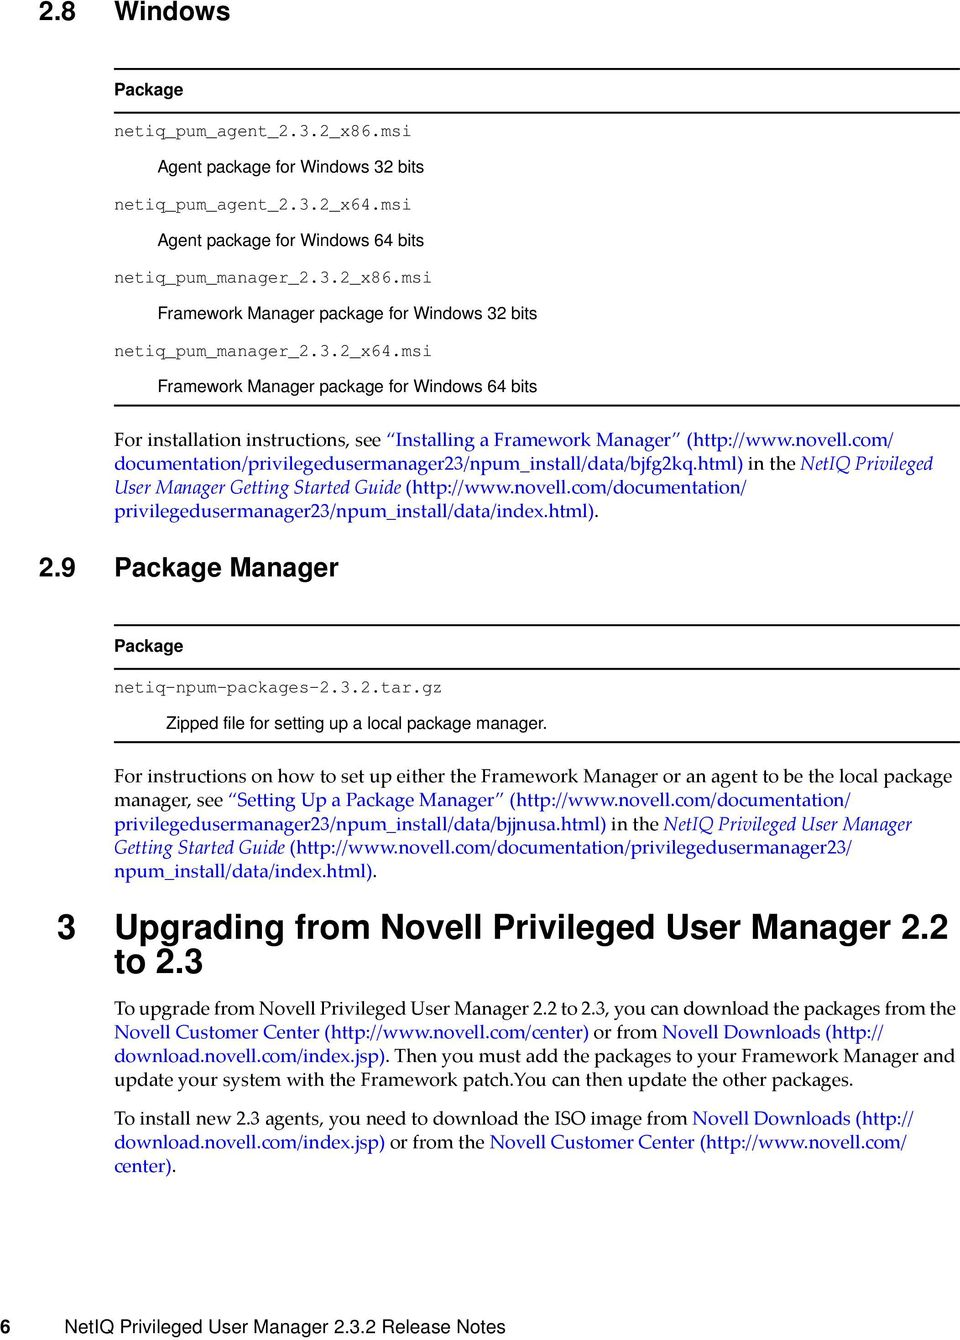 com/ documentation/ in the NetIQ Privileged User Manager Getting Started Guide (http://www.novell.com/documentation/ privilegedusermanager23/npum_install/data/index.html). 2.